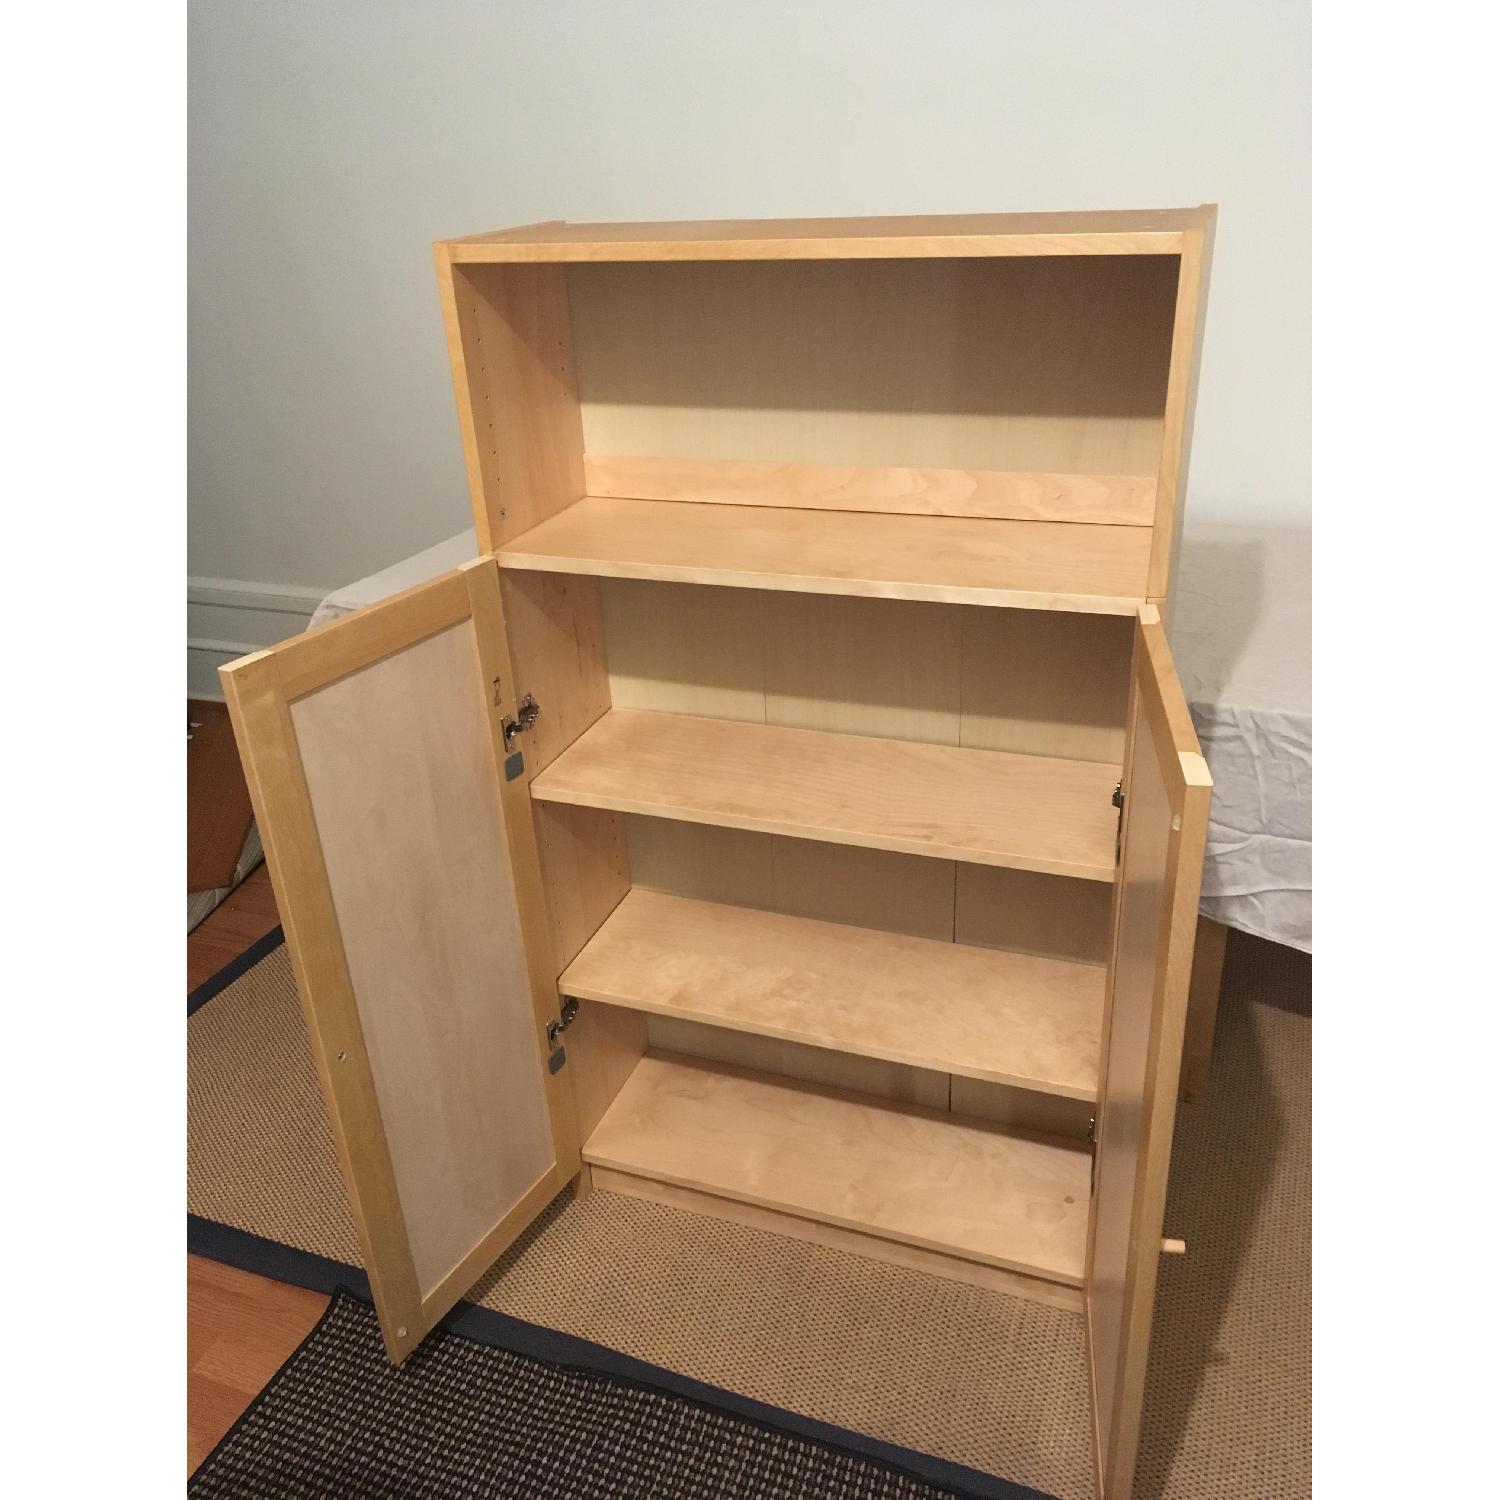 Ikea Billy Bookcase W Doors Height Extender